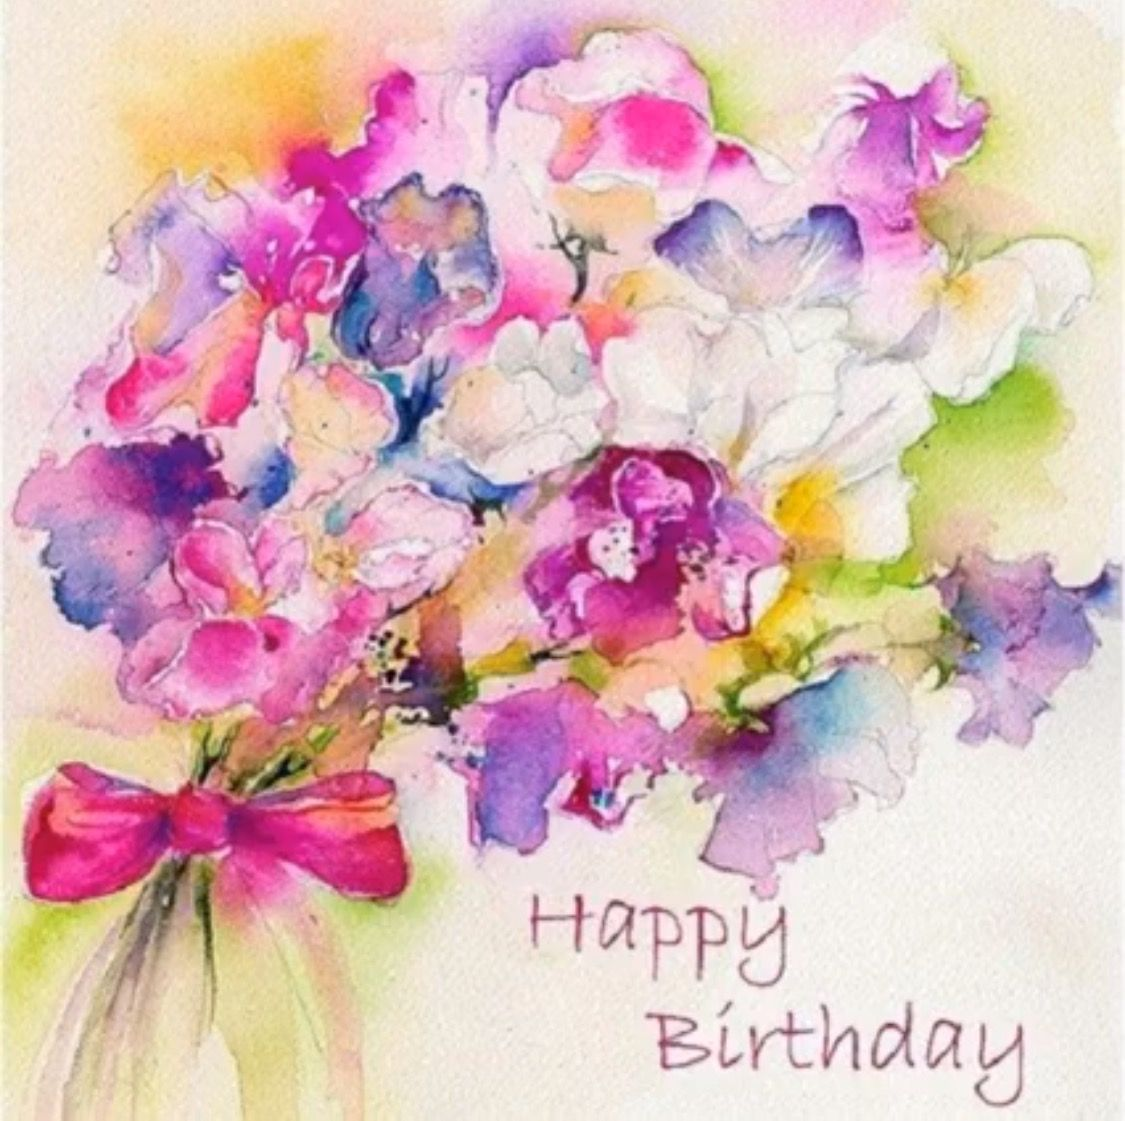 Pin by Darlene on Birthday wishes | Happy birthday flower ...